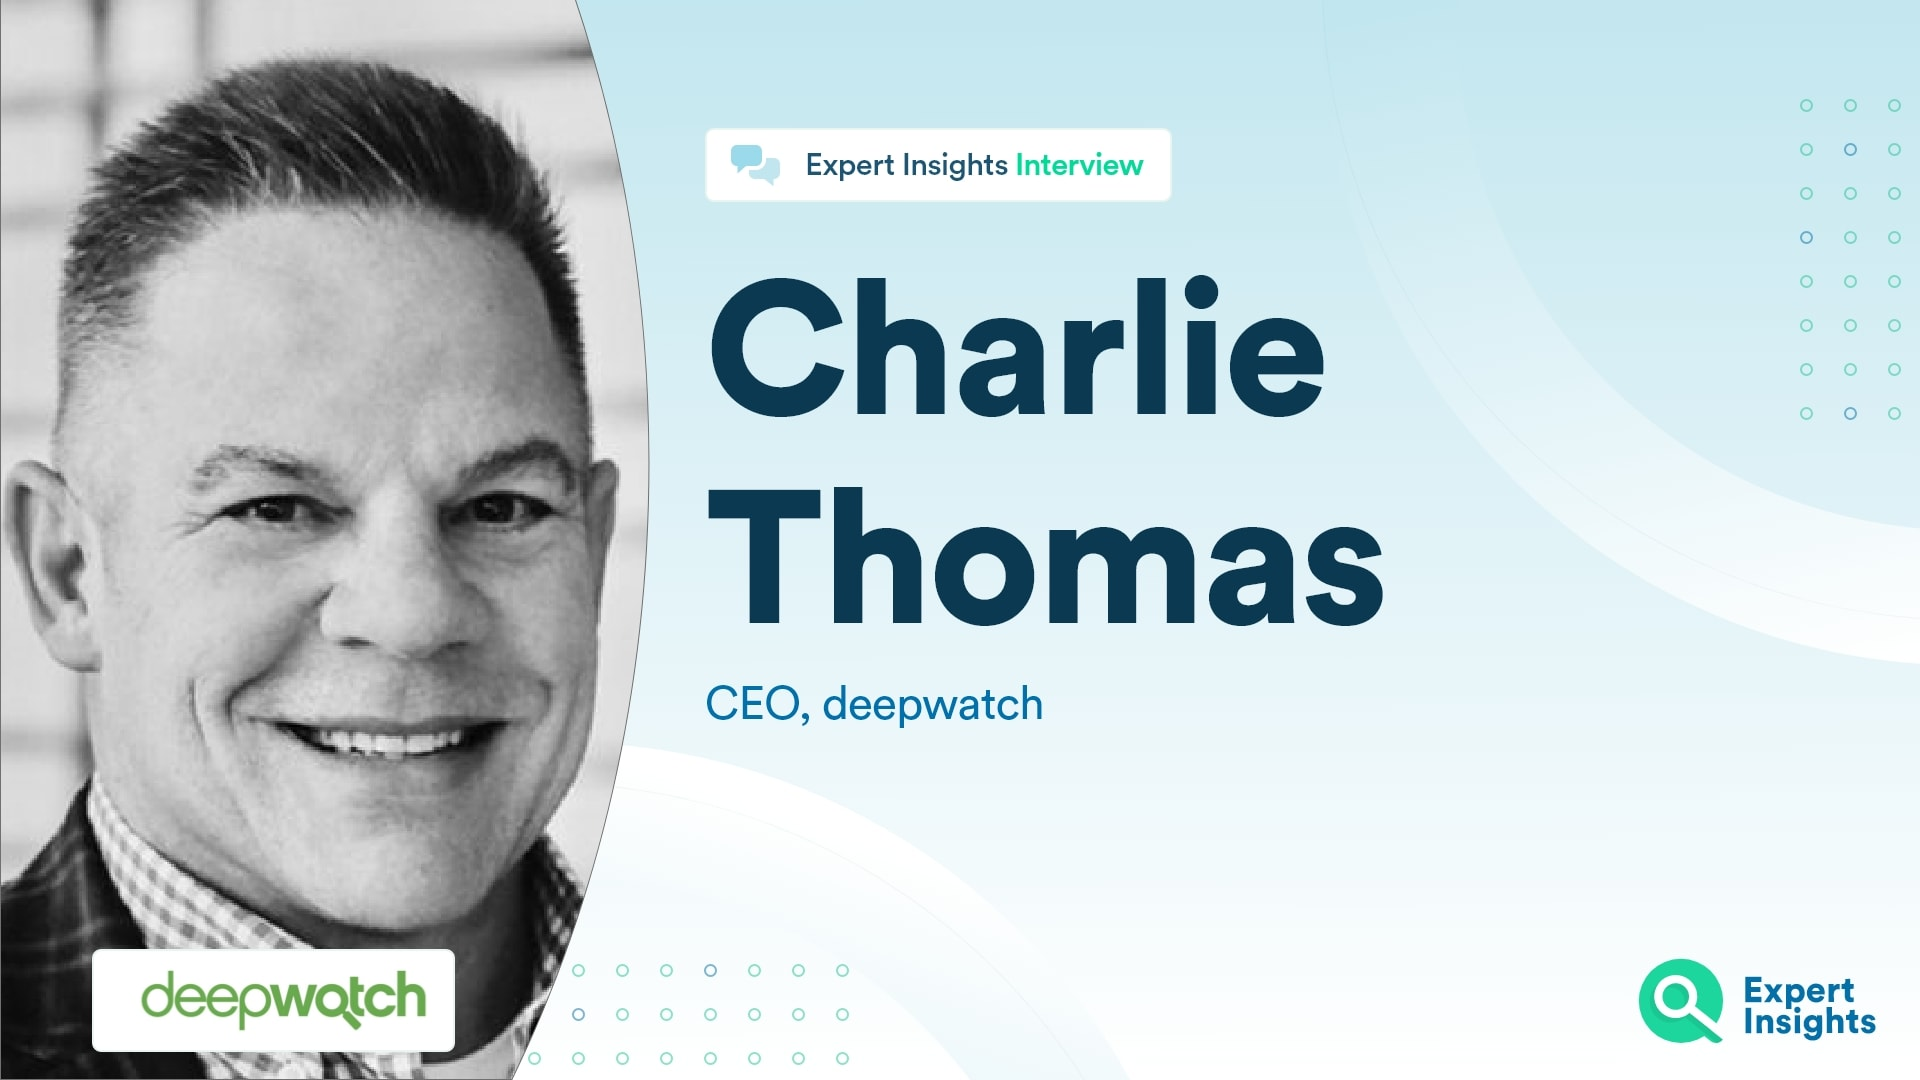 Interview With Charlie Thomas Of deepwatch - Expert Insights